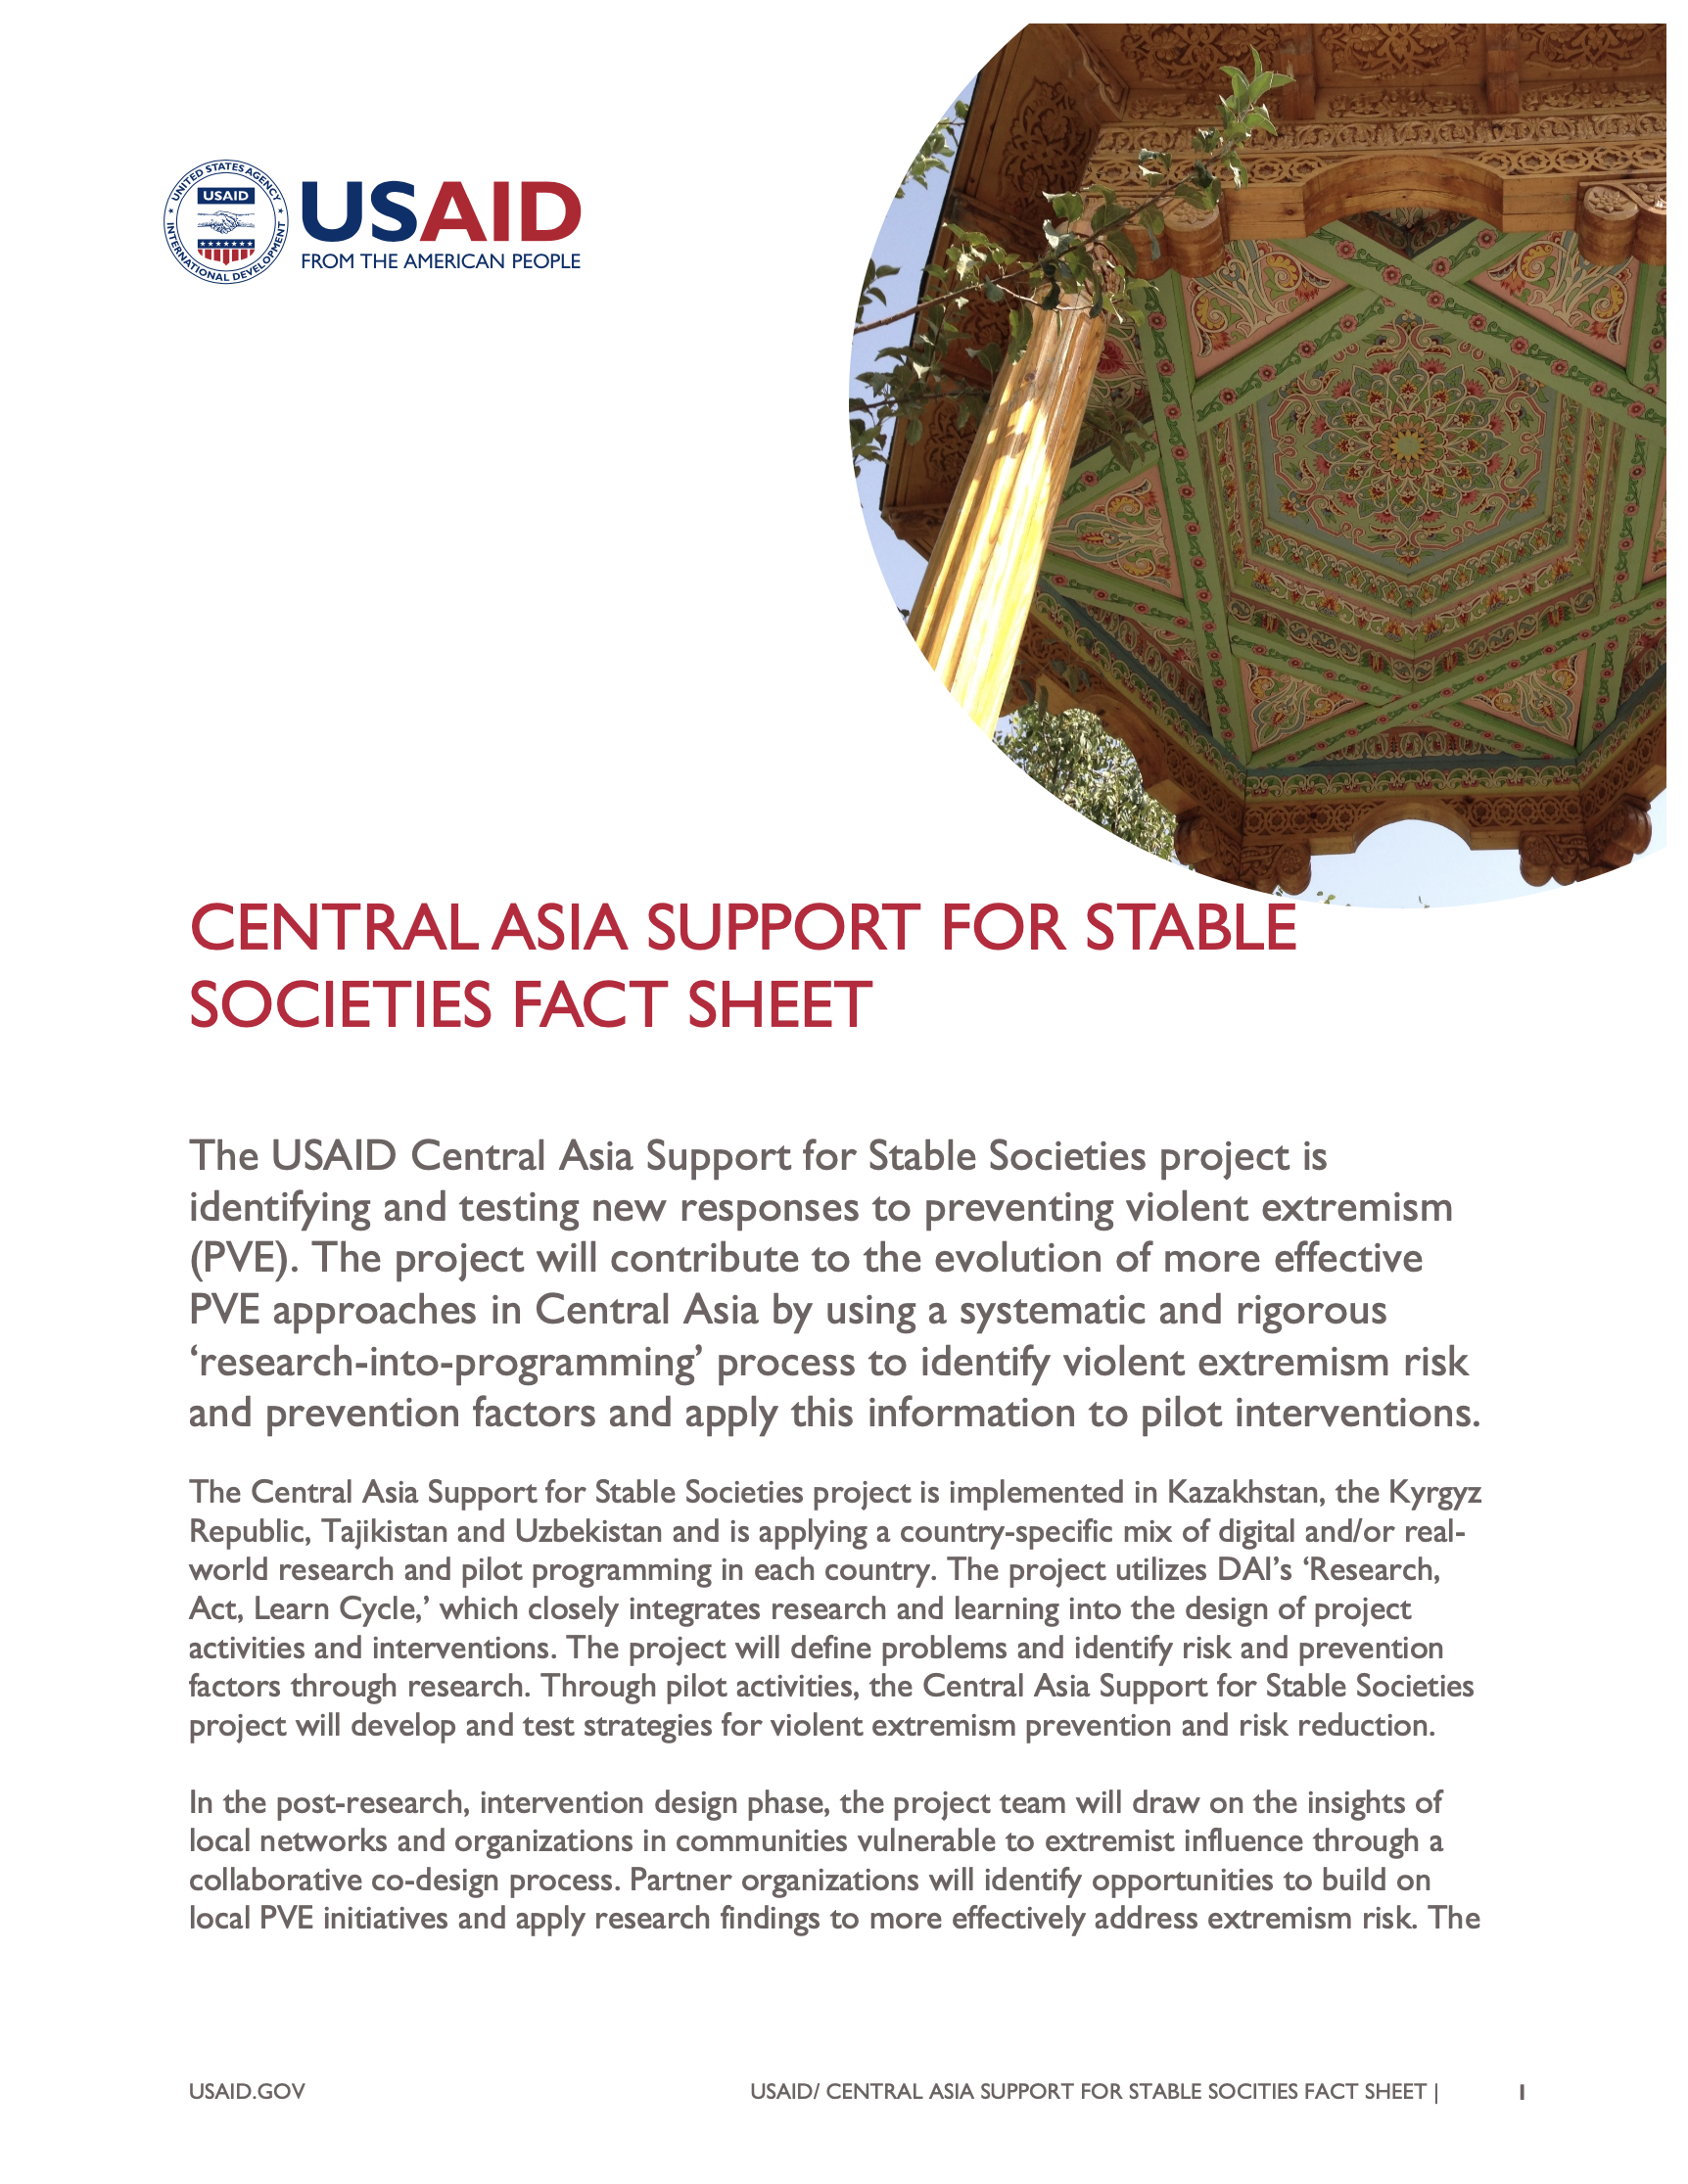 Central Asia Support for Stable Societies